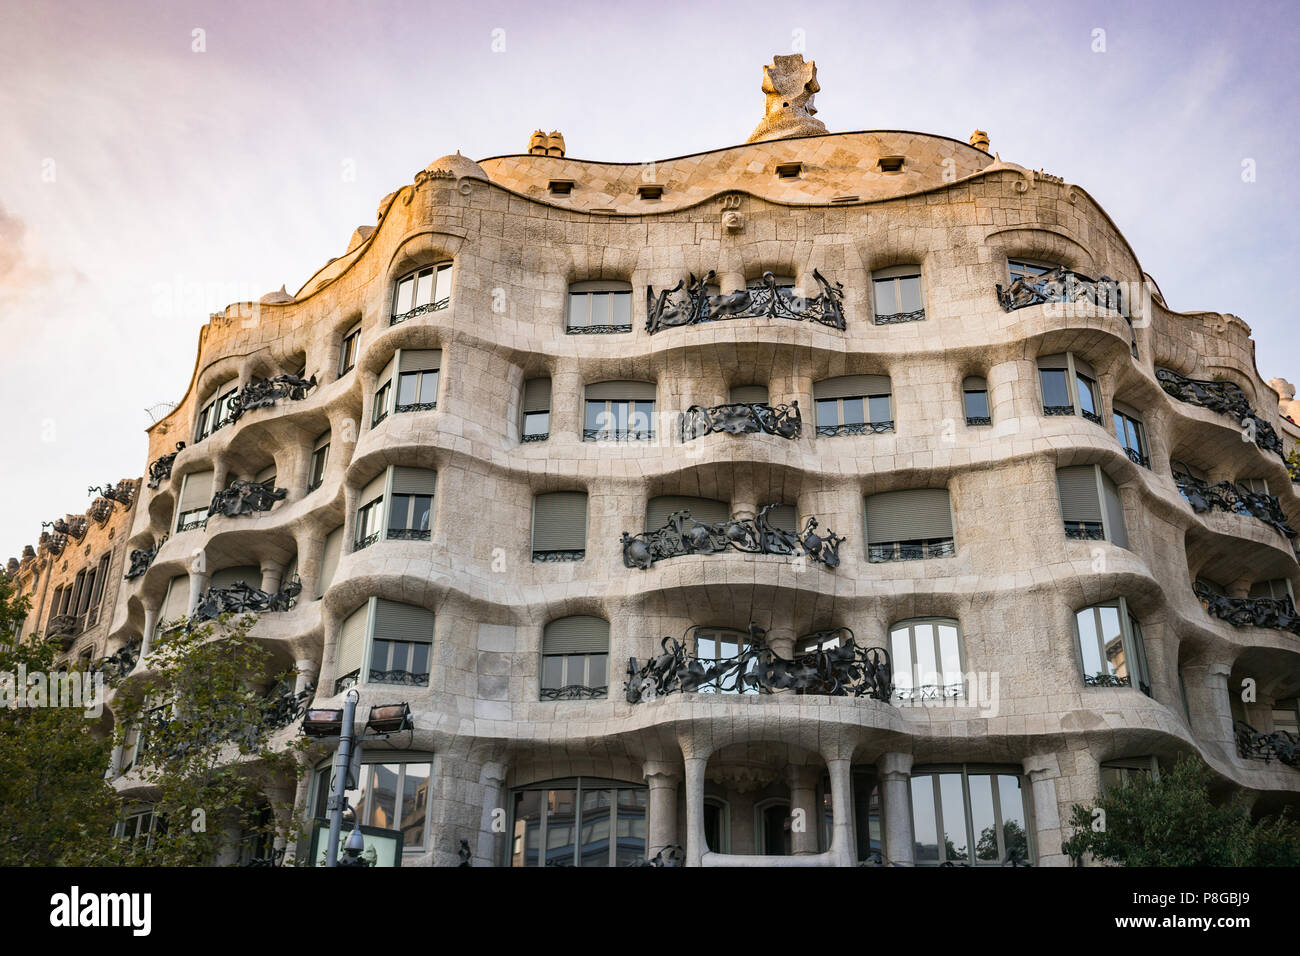 Waves and sculptural building details of La Pedrera, Casa Mila in Barcelona, Spain. Ornate architecture, view from below at sunset, vibrant colours. Stock Photo